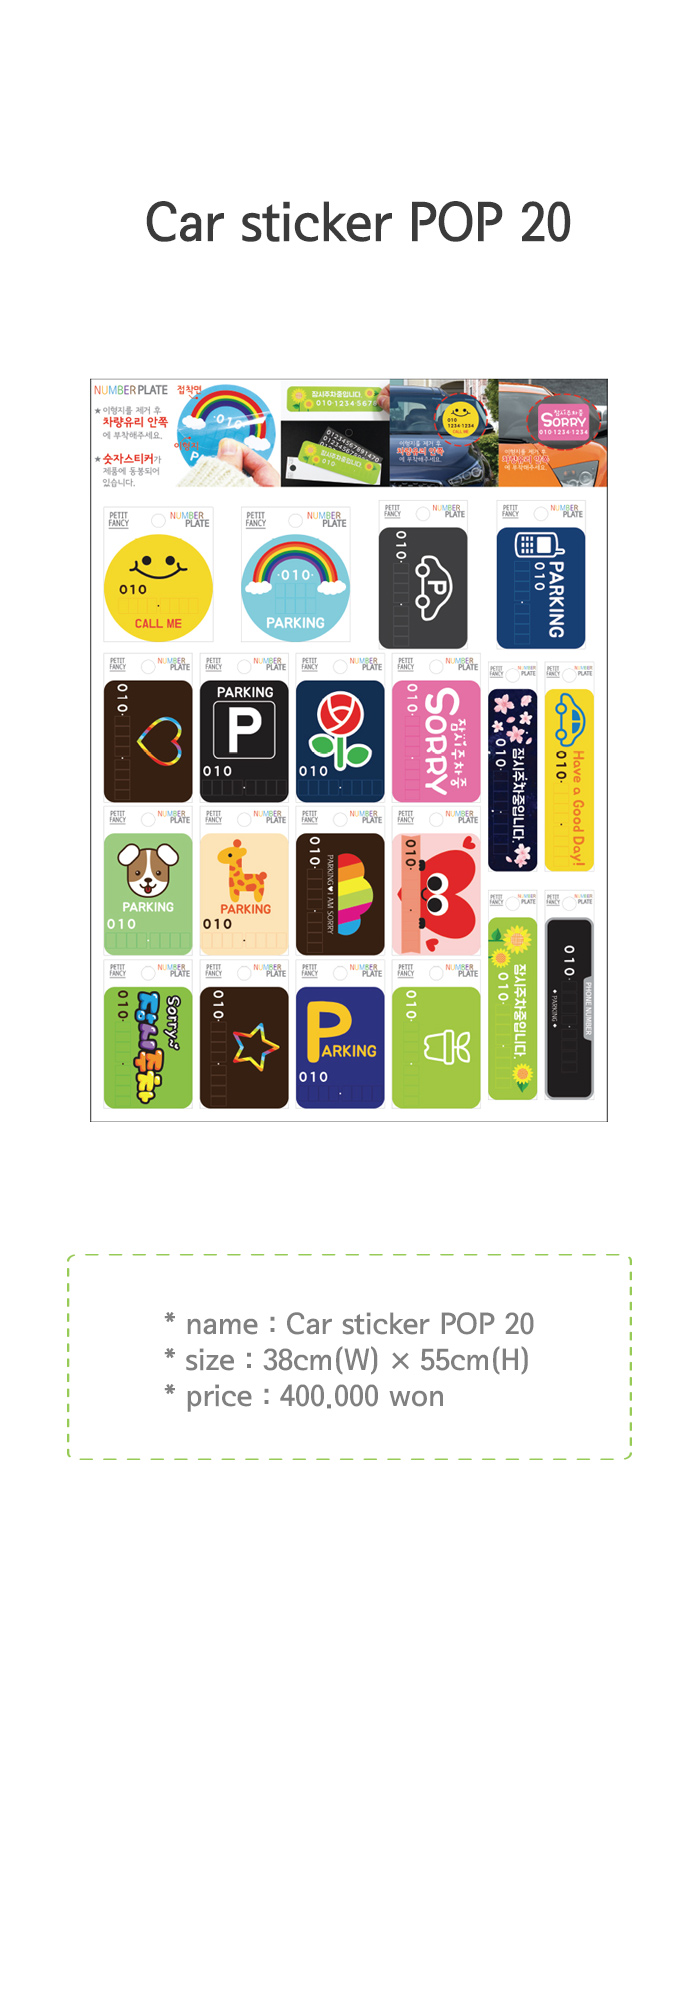 carsticker2000_Display_ENG.jpg